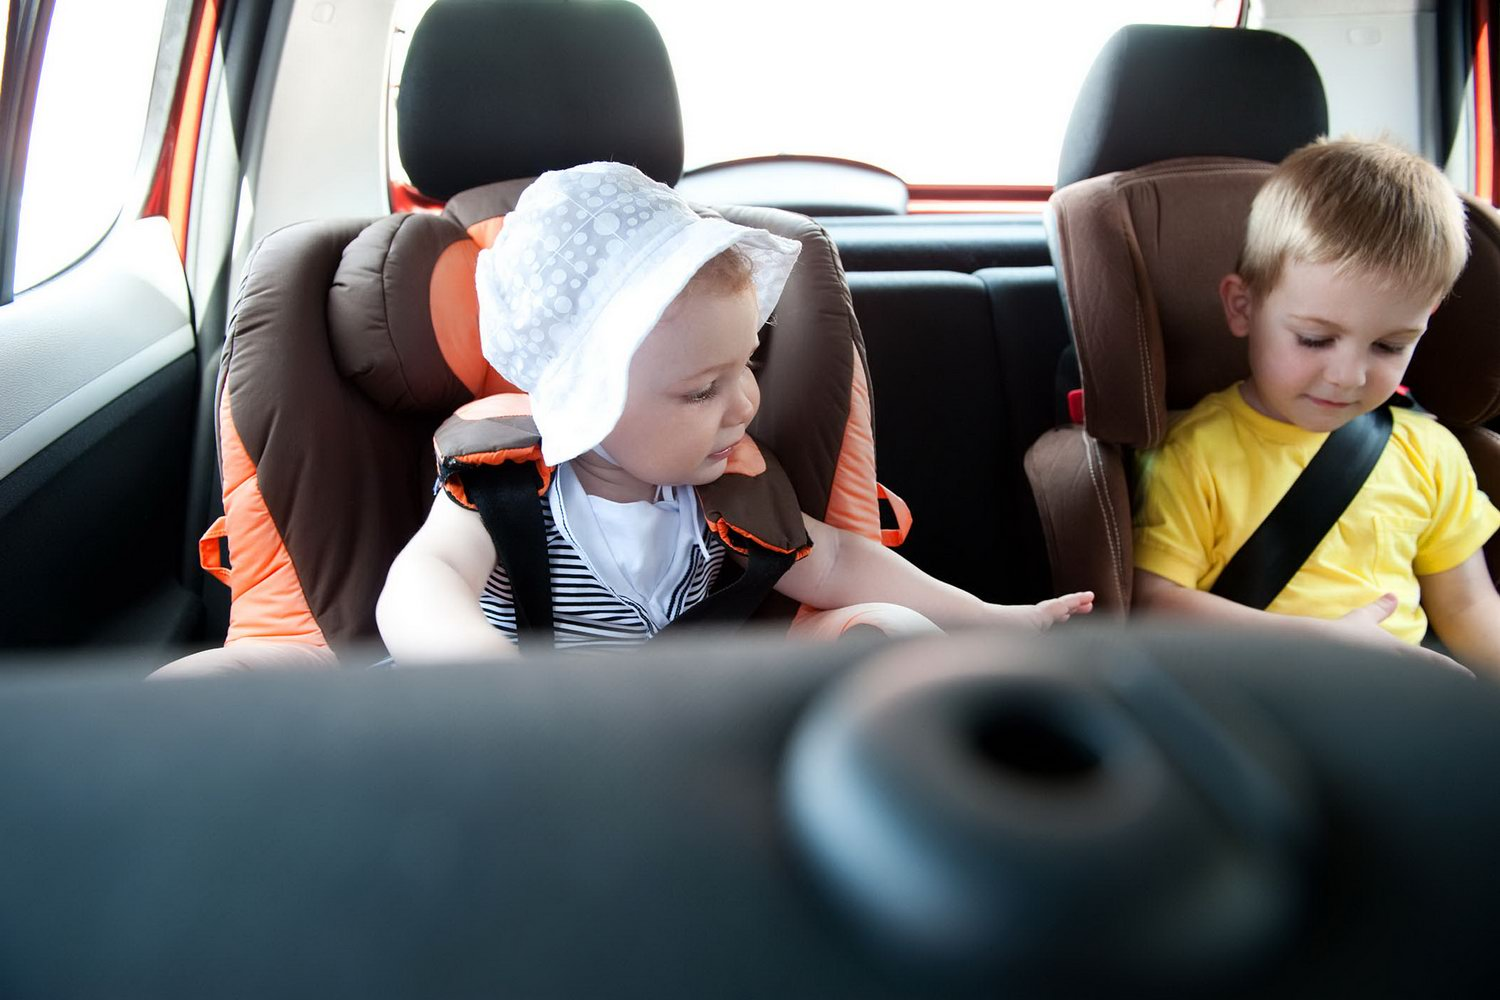 Complete Car Features   Top tips for travelling with kids